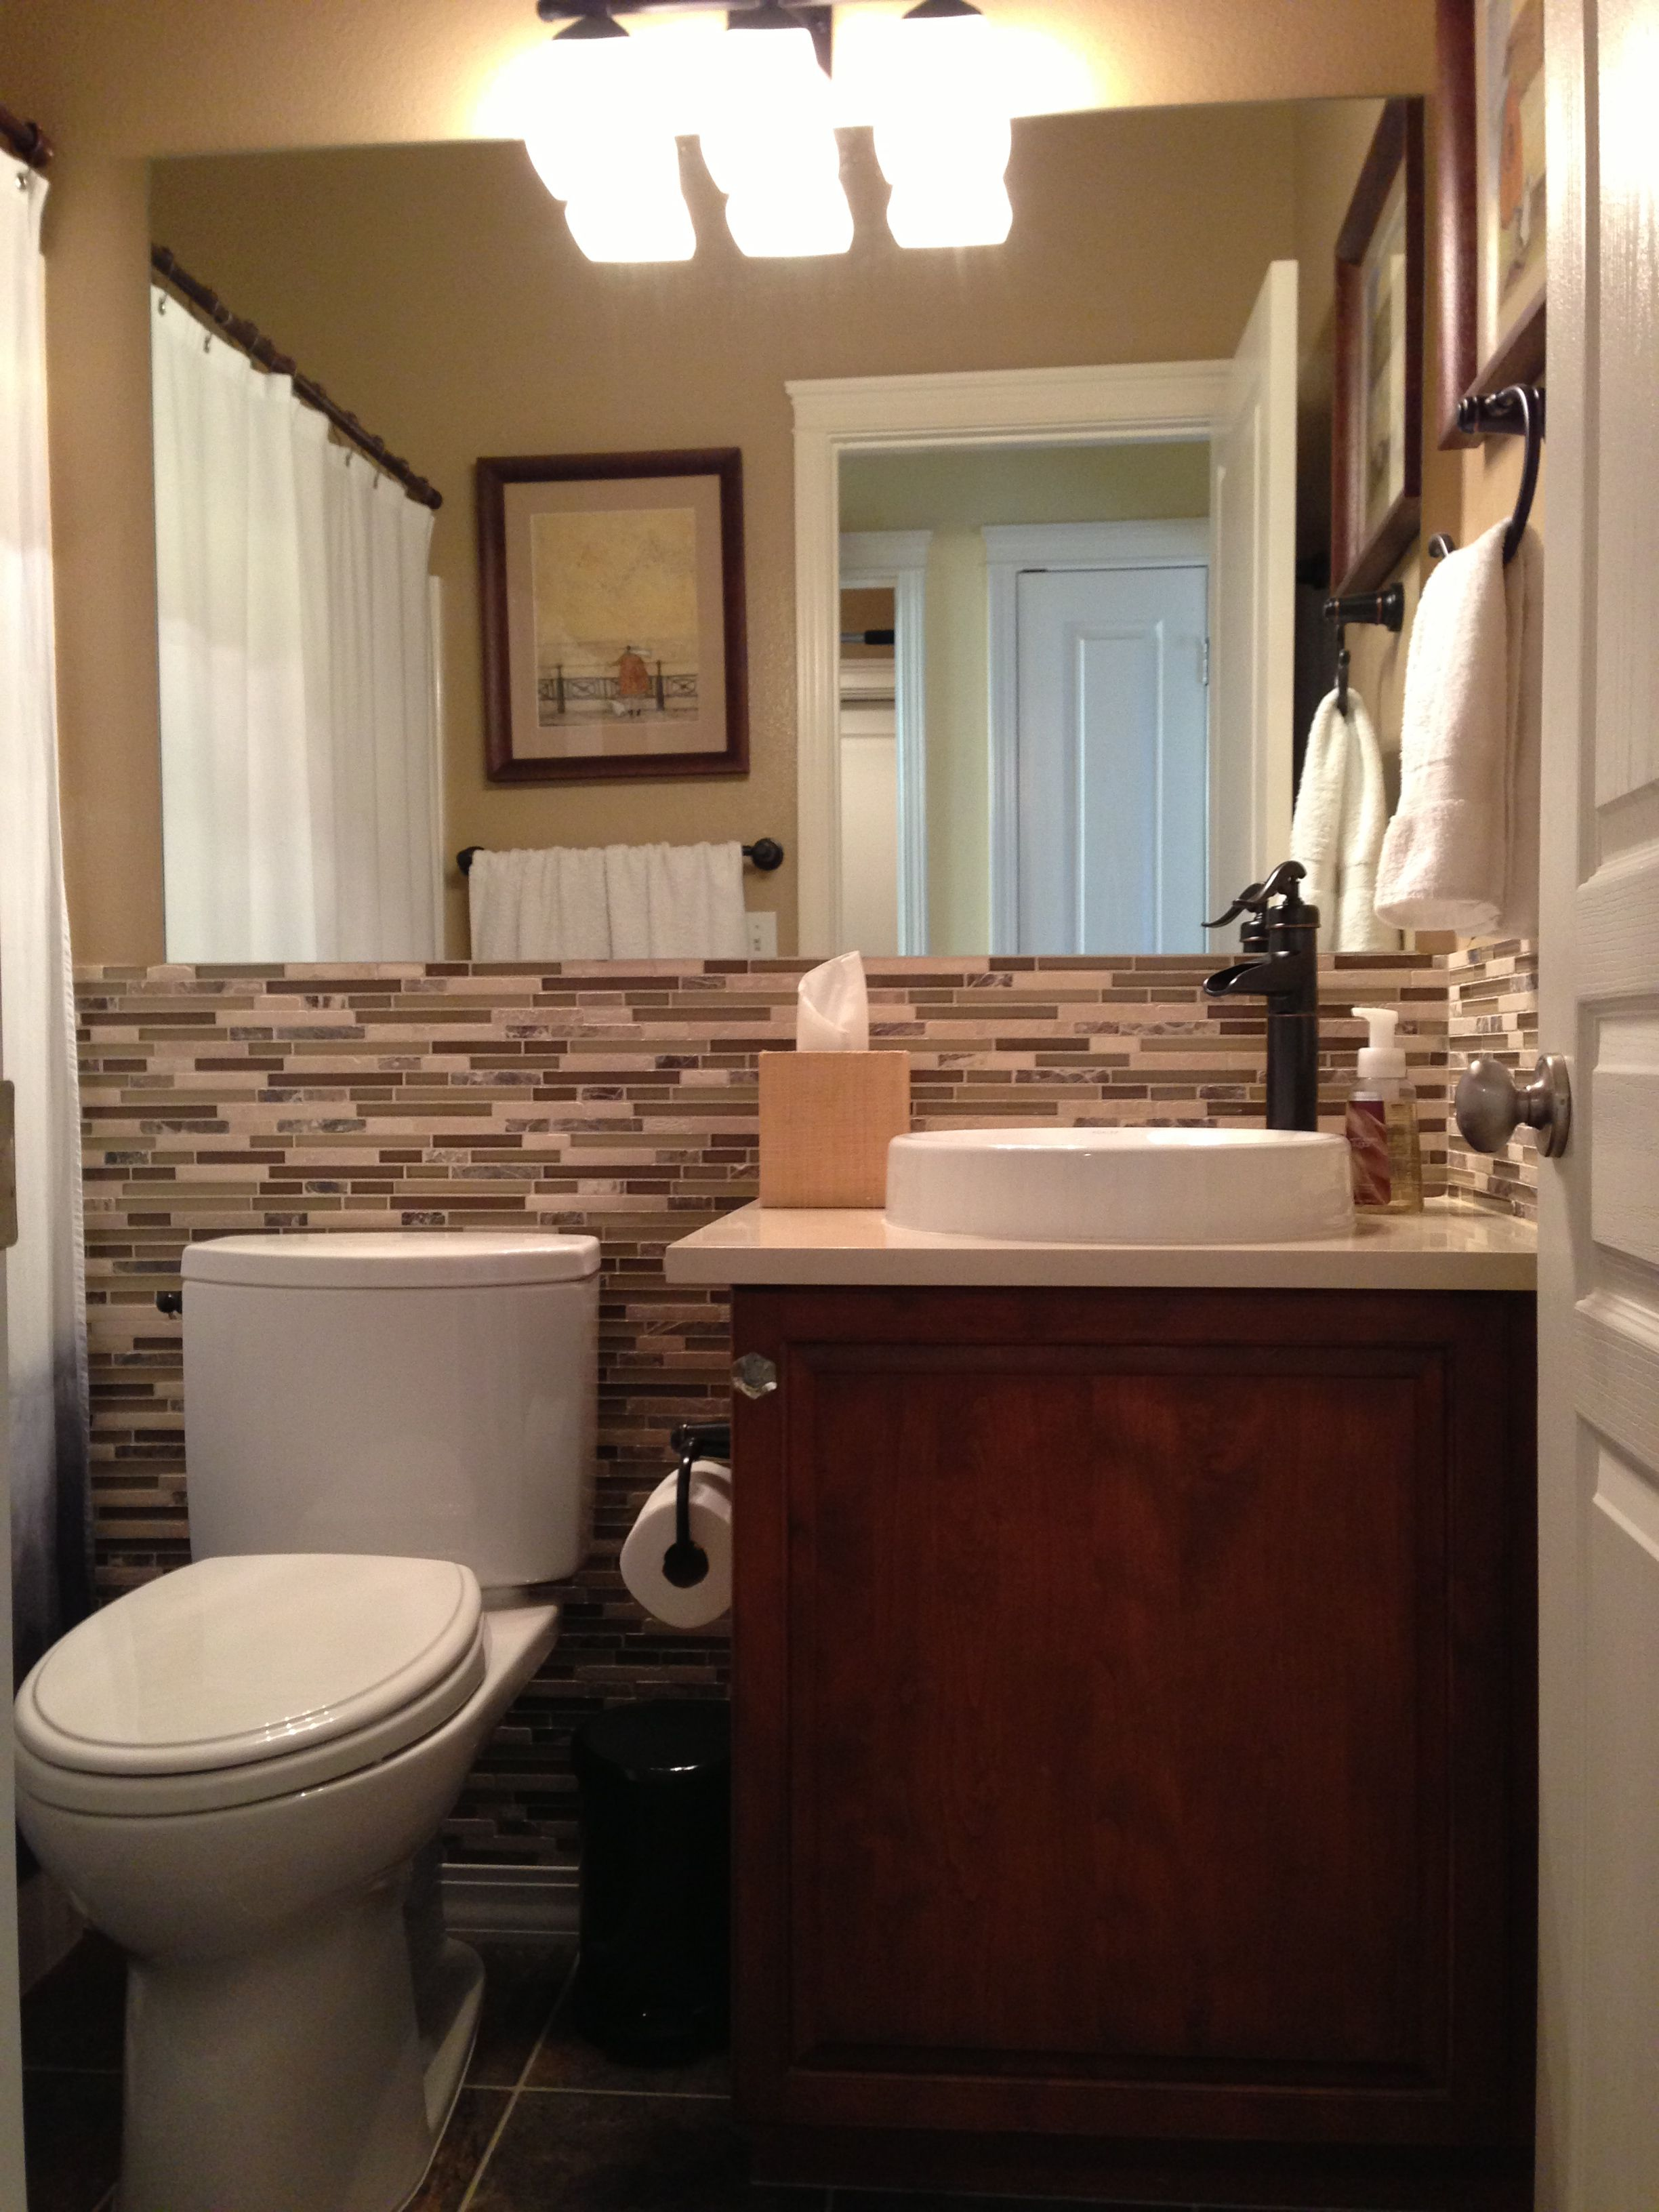 Tranquil bathroom Pfister Faucet Kohler Sink Toto Toilet glass tile and stone